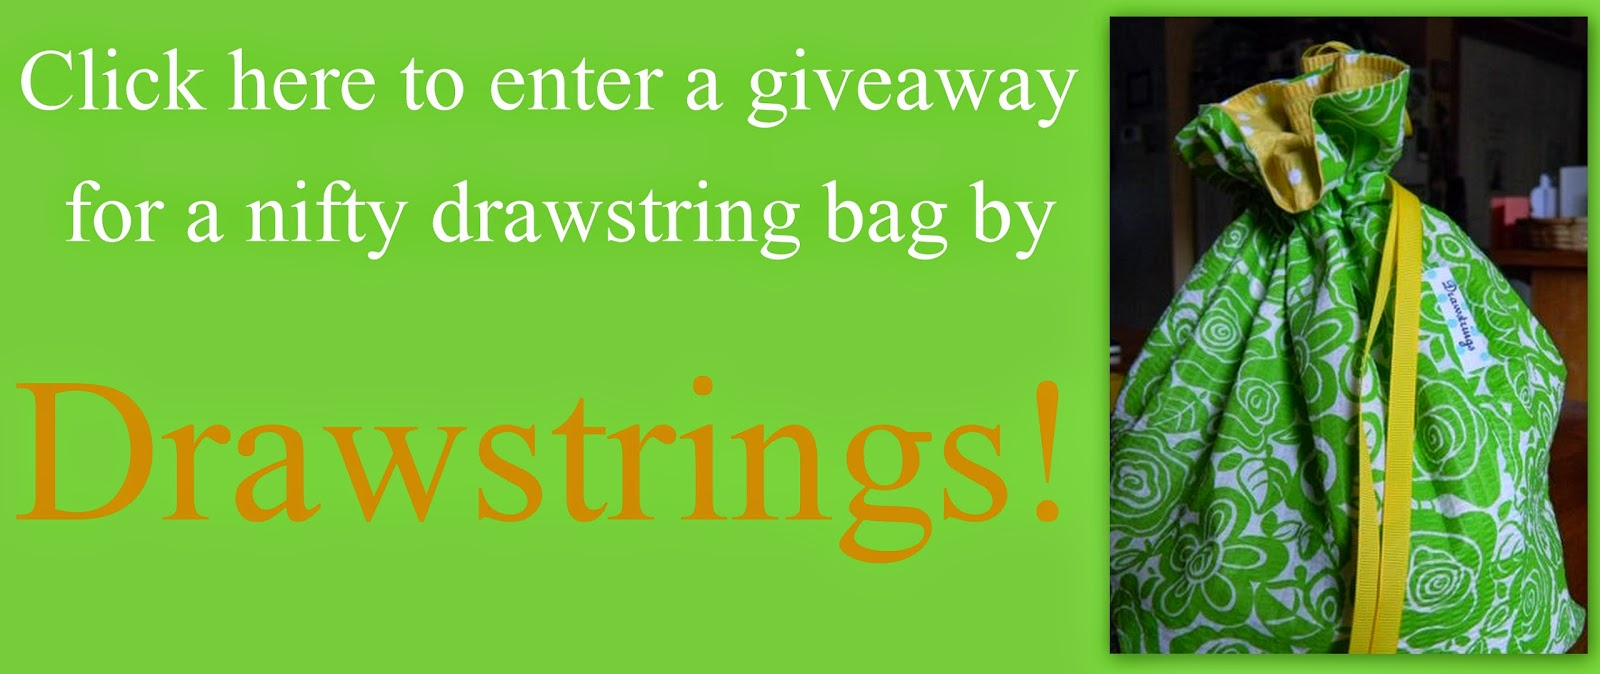 http://happyindolevalley.blogspot.com/2014/06/drawstrings-giveaway.html